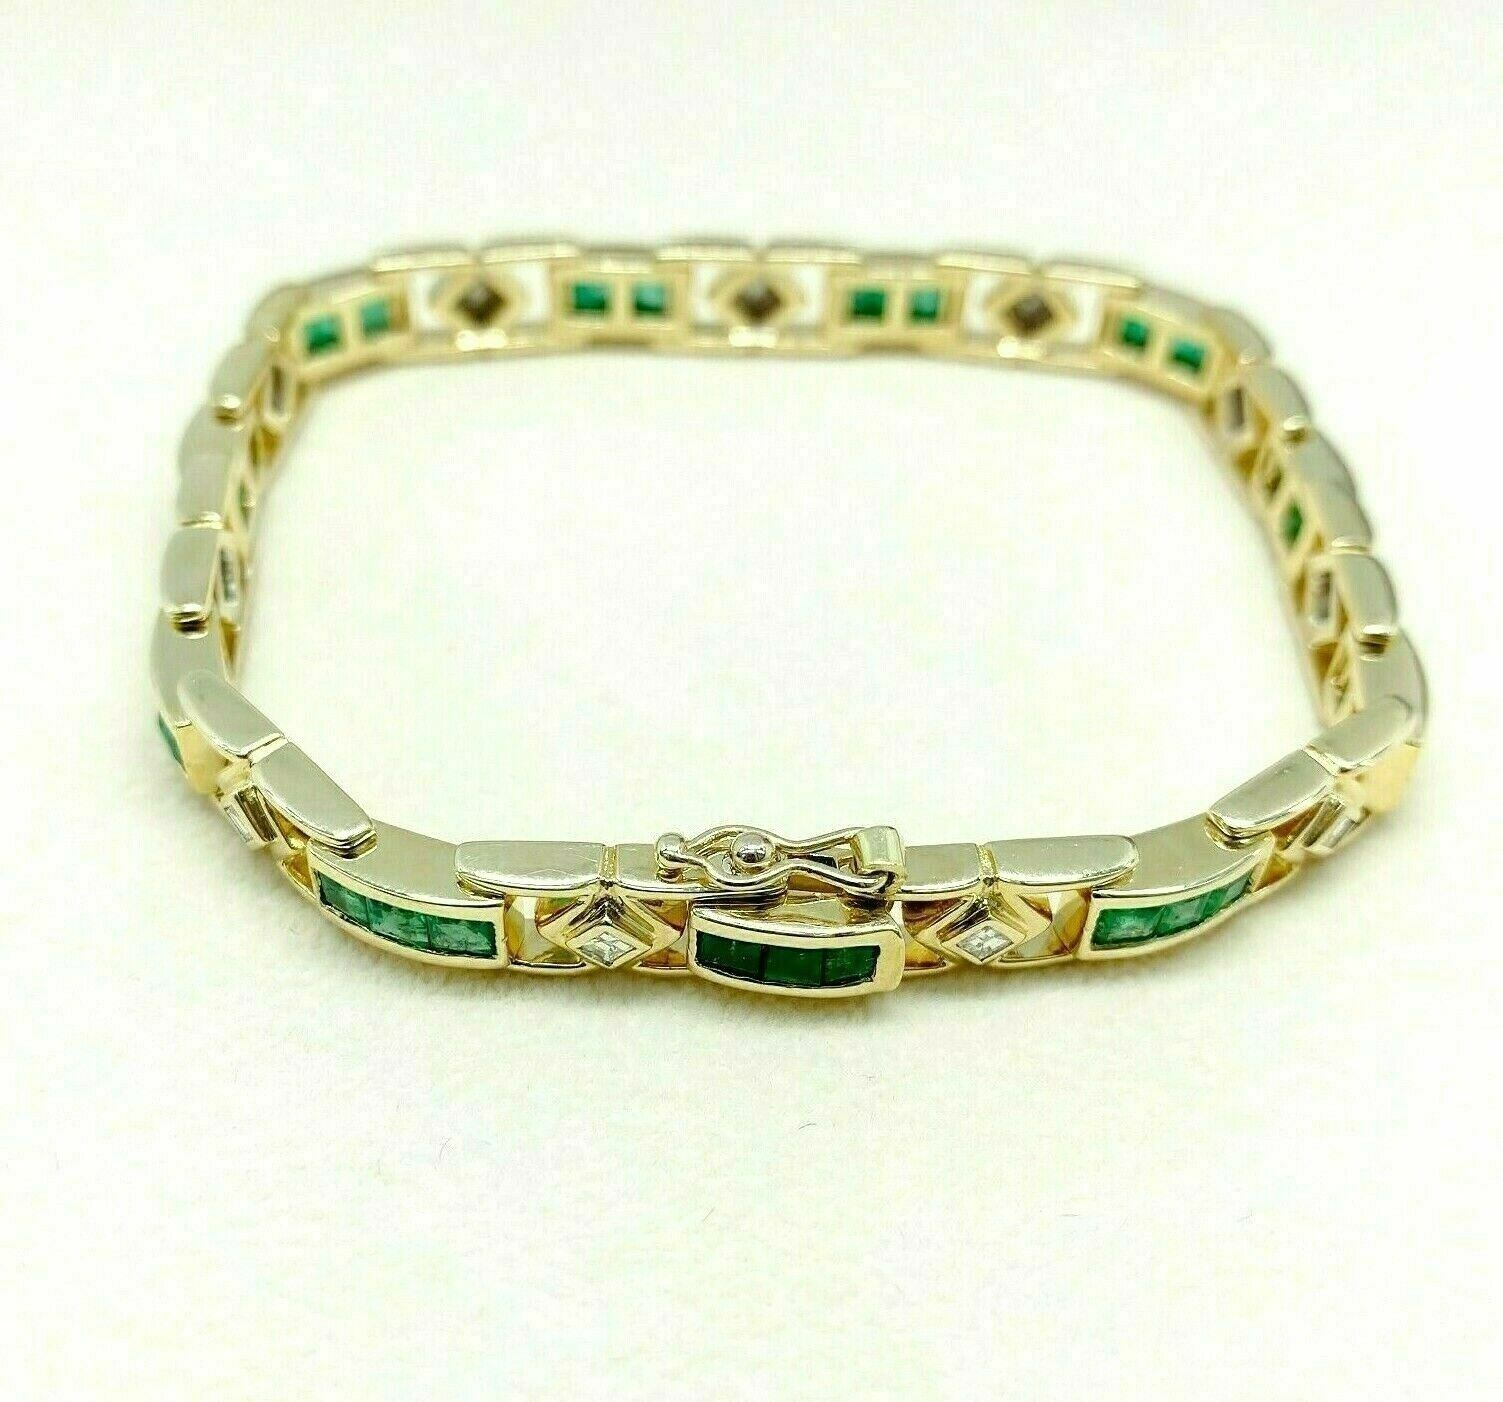 3.45 Carats t.w. Emerald and Asscher Diamond Tennis Bracelet 18K Yellow Gold